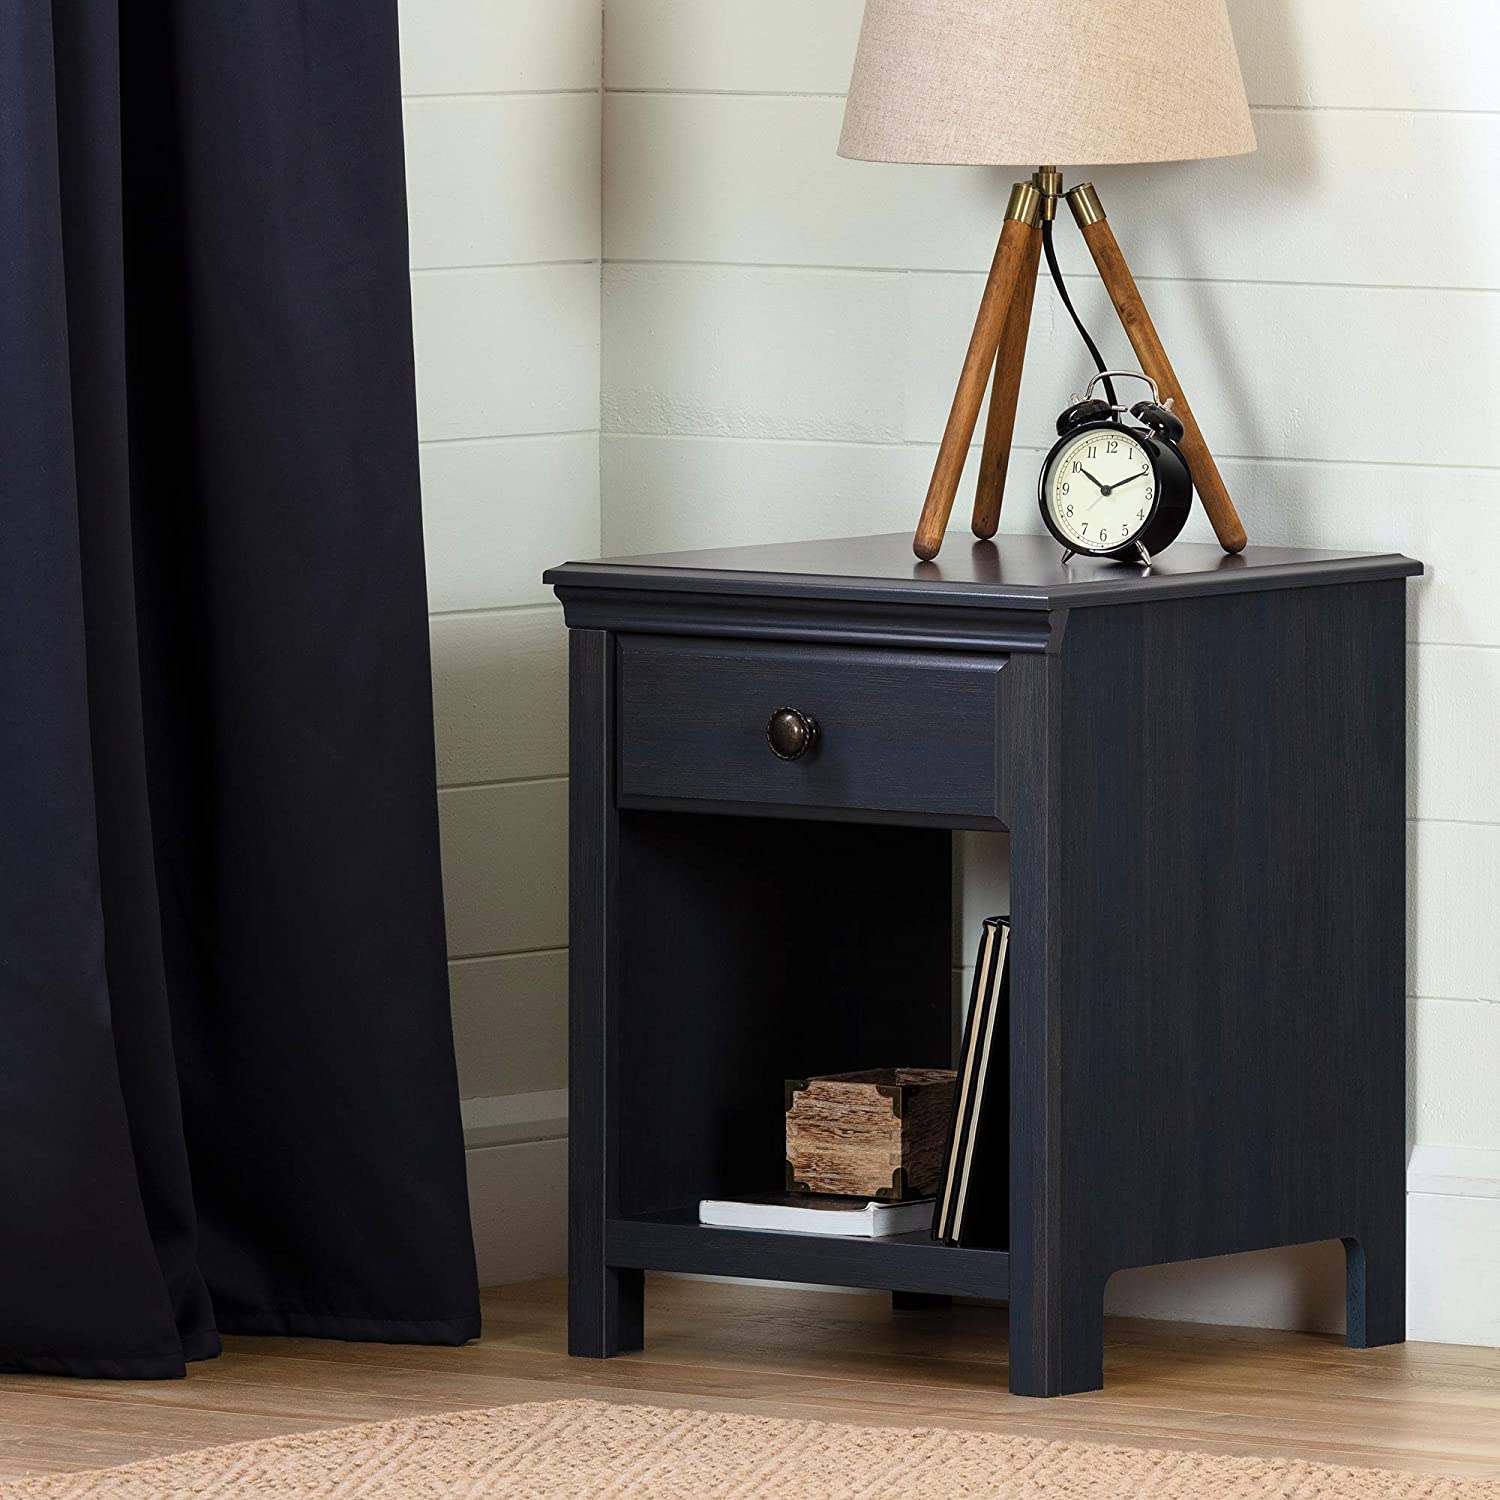 South Shore Cotton Candy 1-Drawer Nightstand-Blueberry